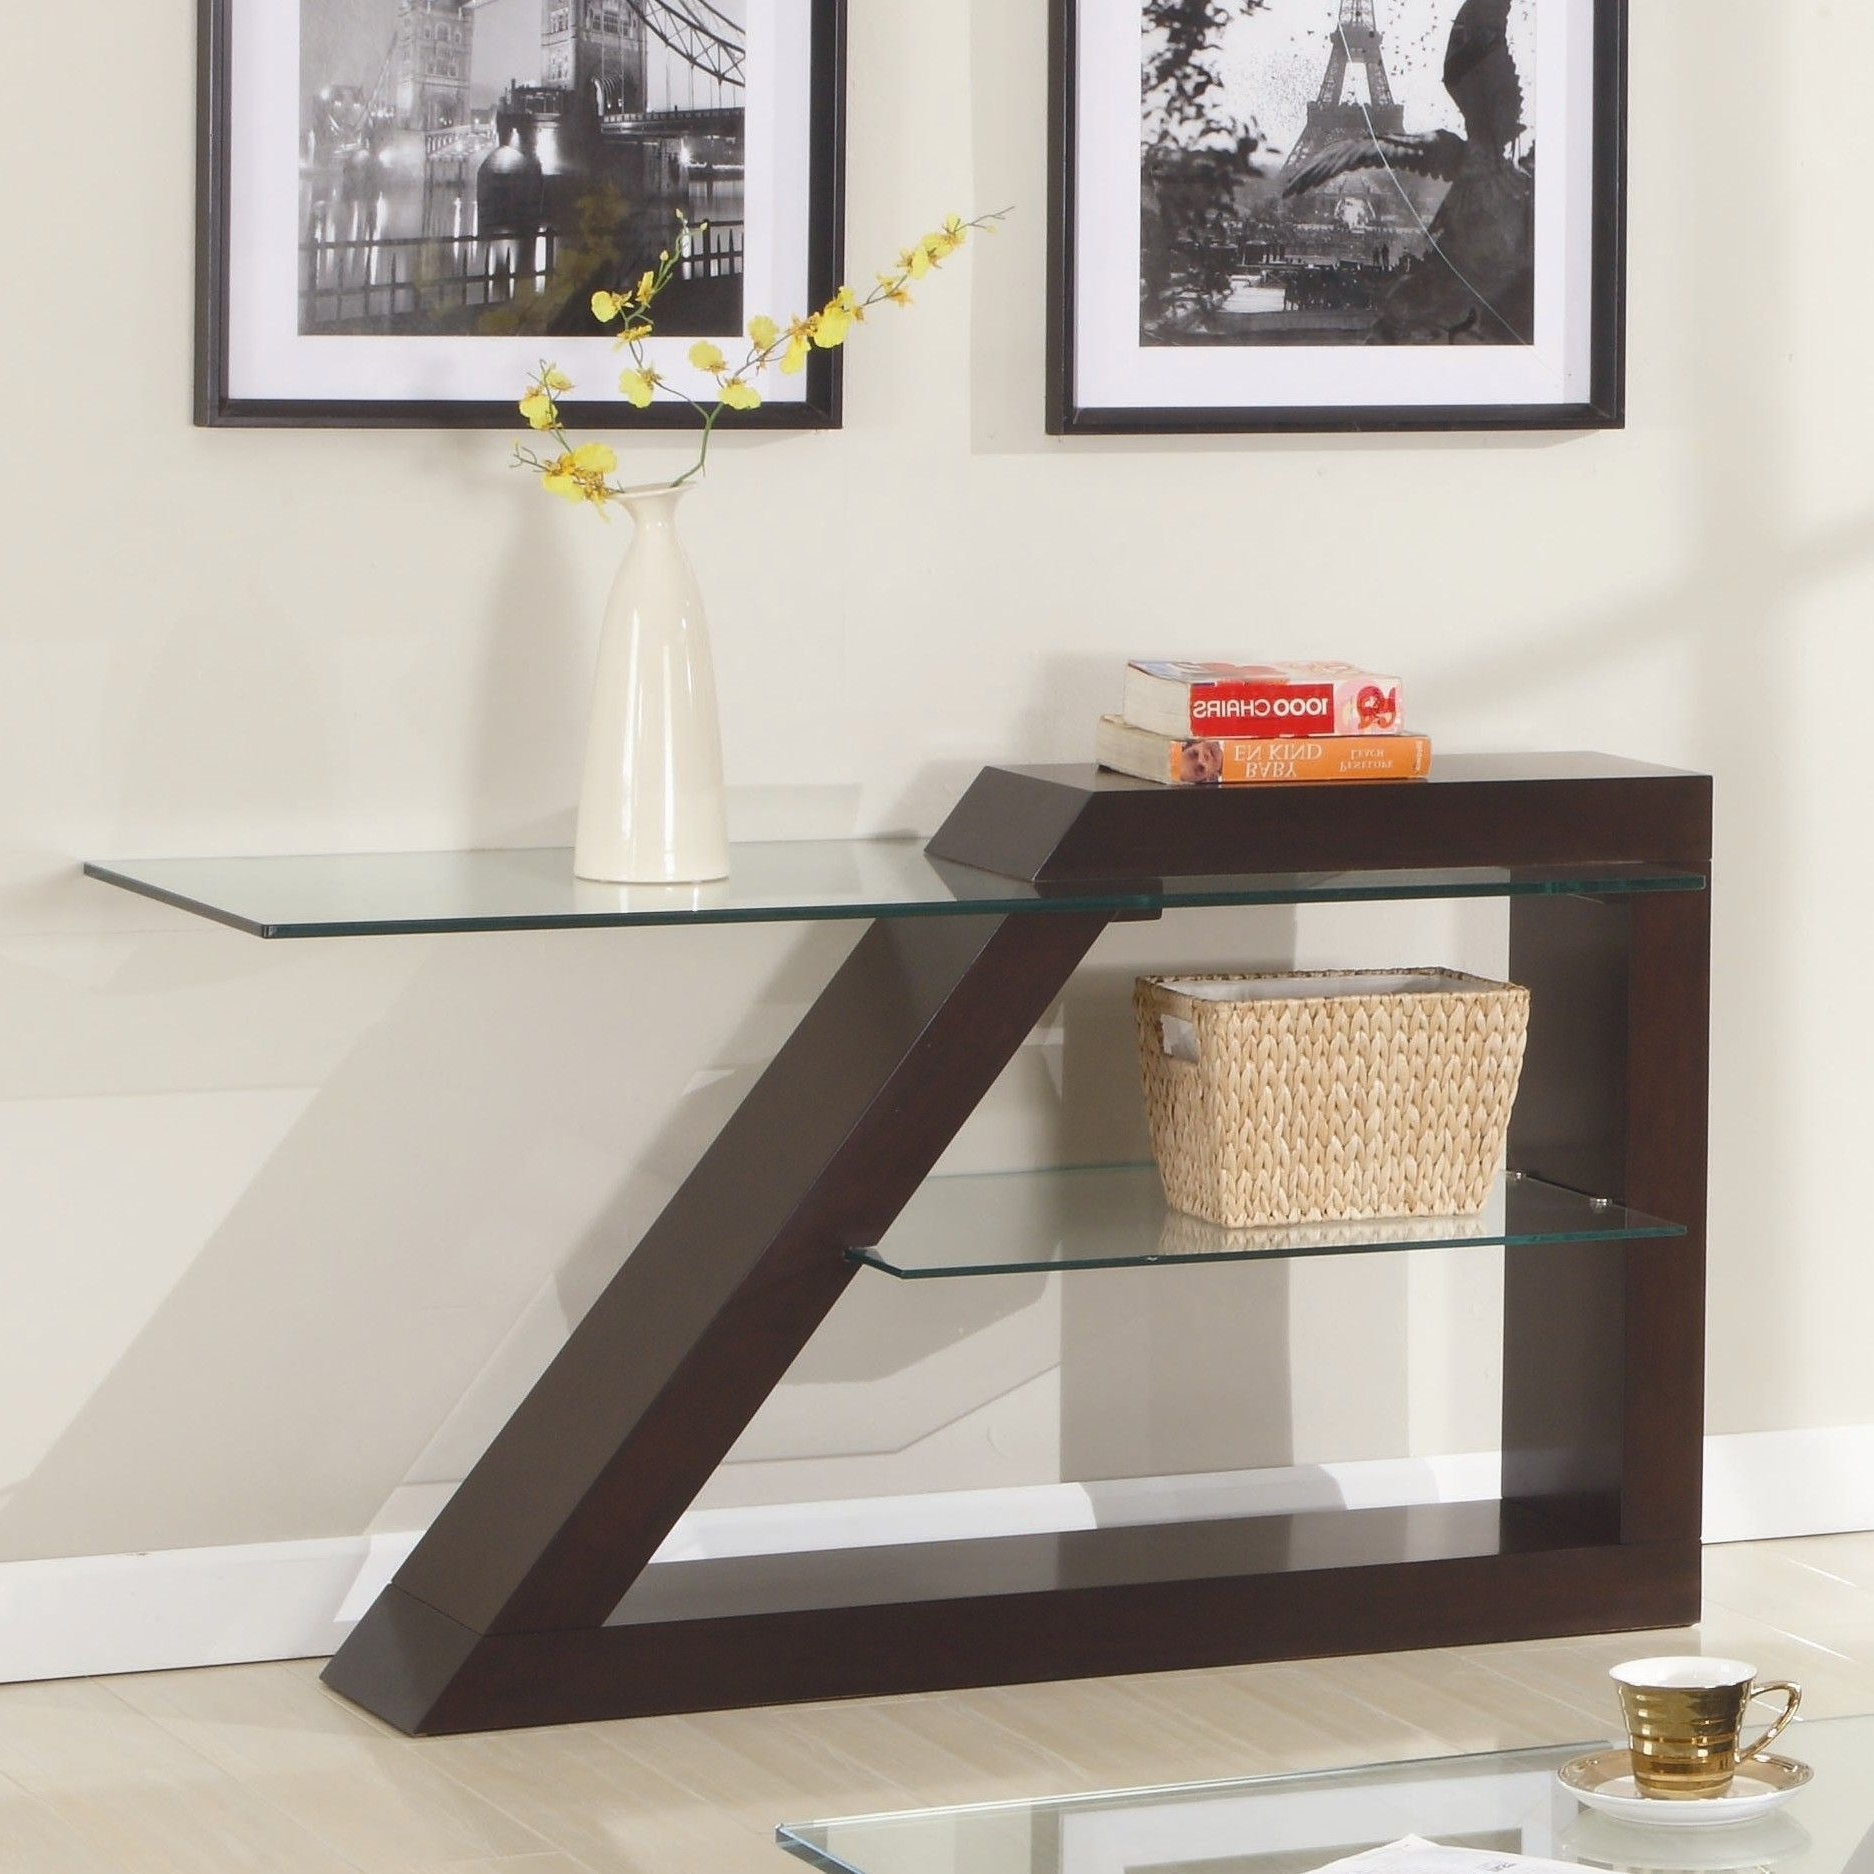 Parsons Travertine Top & Dark Steel Base 48X16 Console Tables With Best And Newest Jensen Console Table (View 12 of 20)